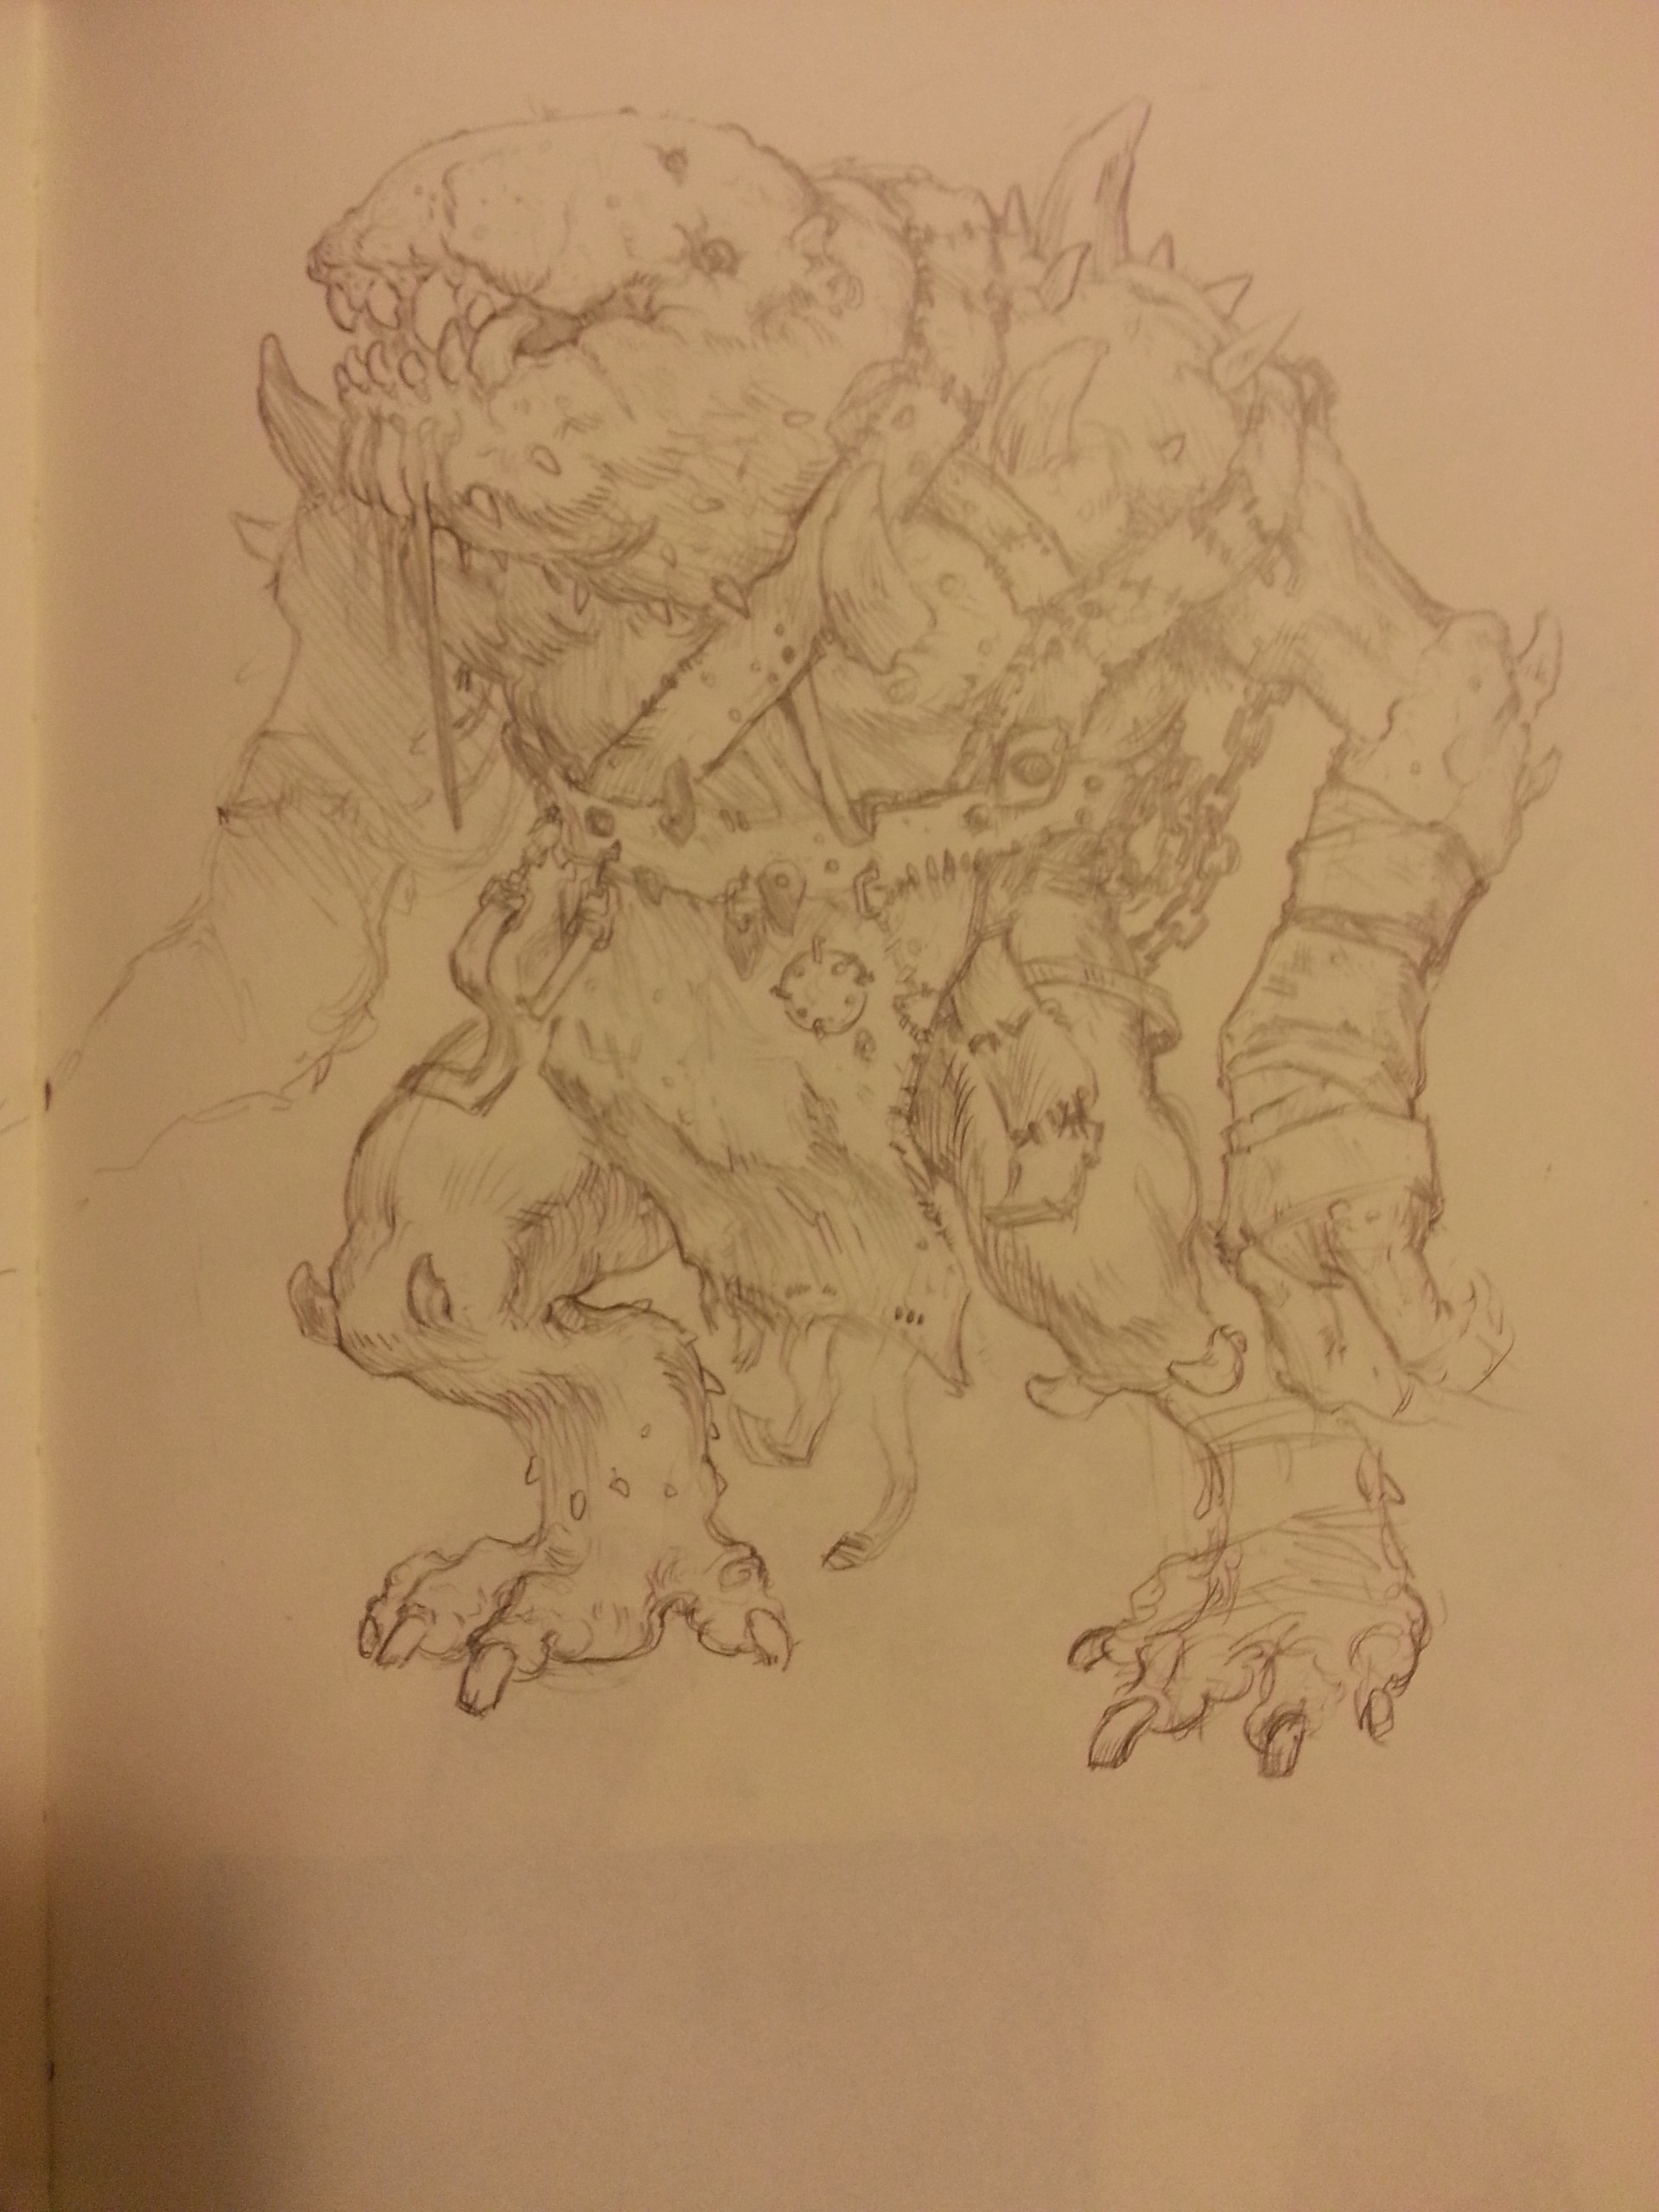 Ben hosac orgrish sketch